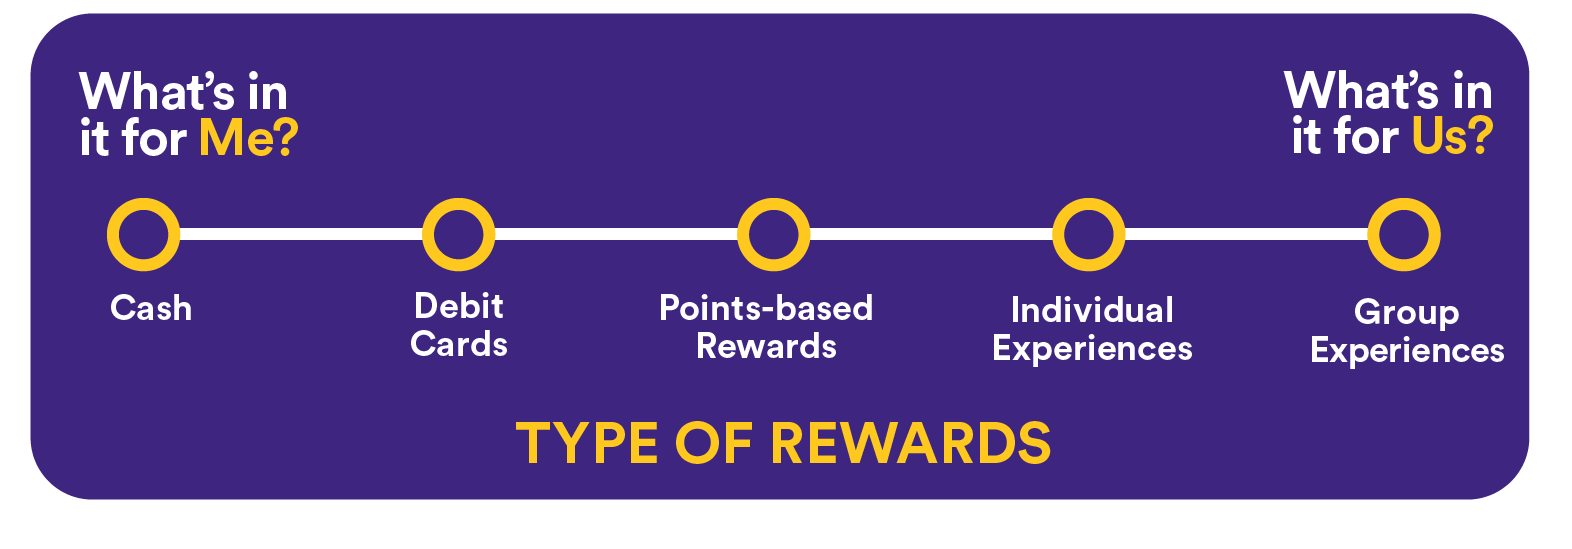 Types of Rewards